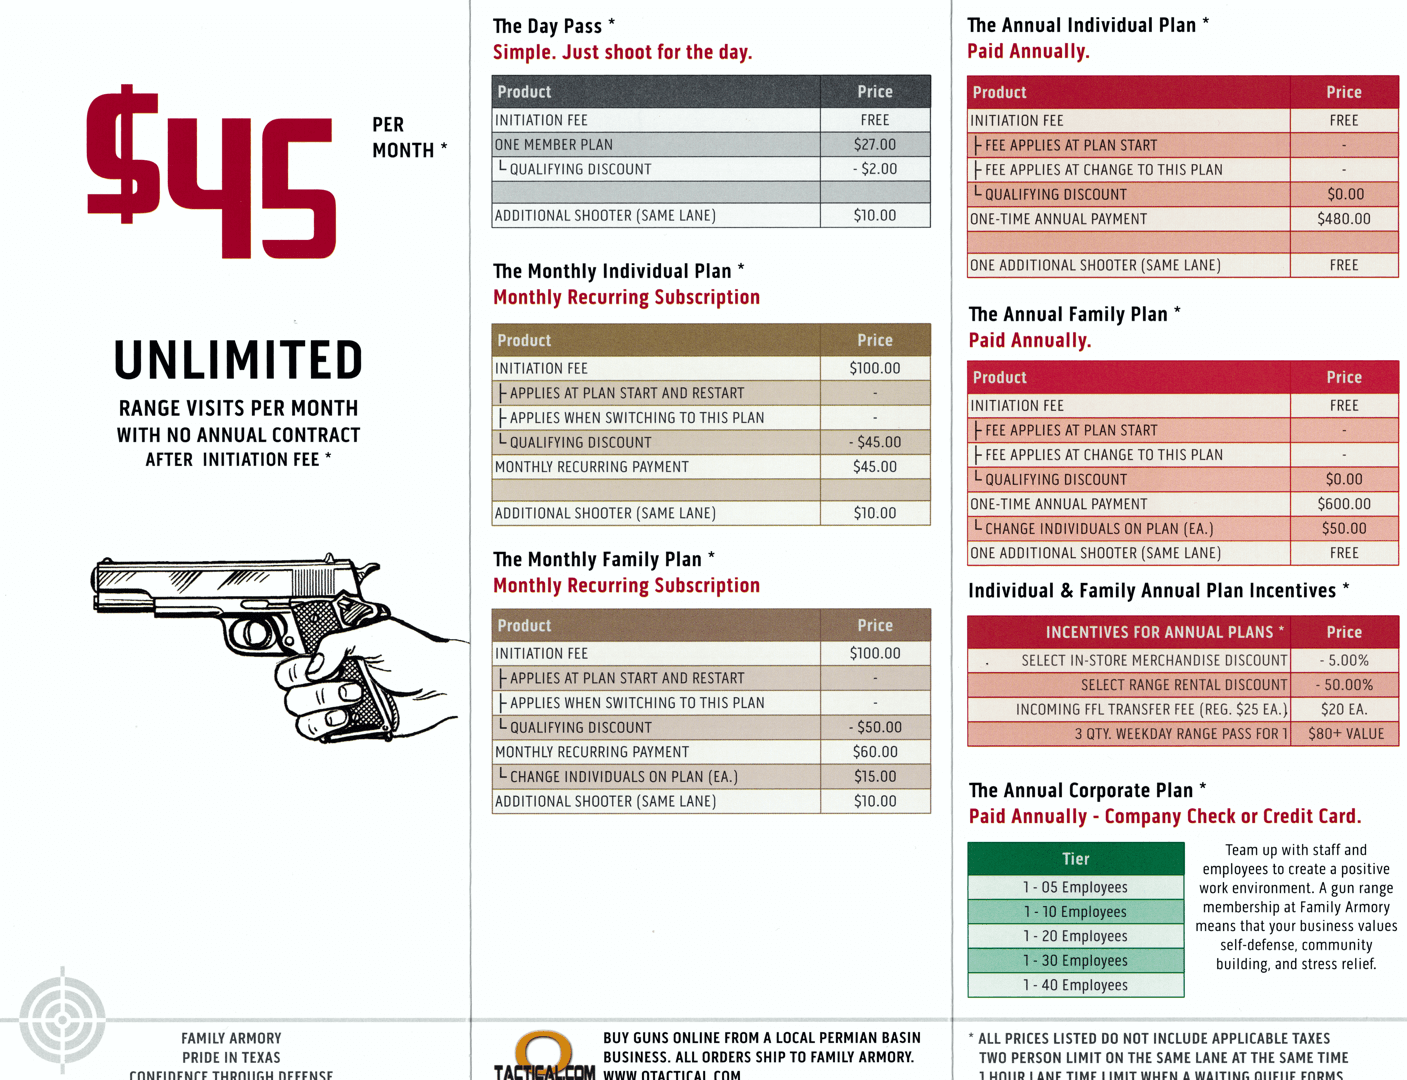 Family Armory Pricing Membership Brochure Interior